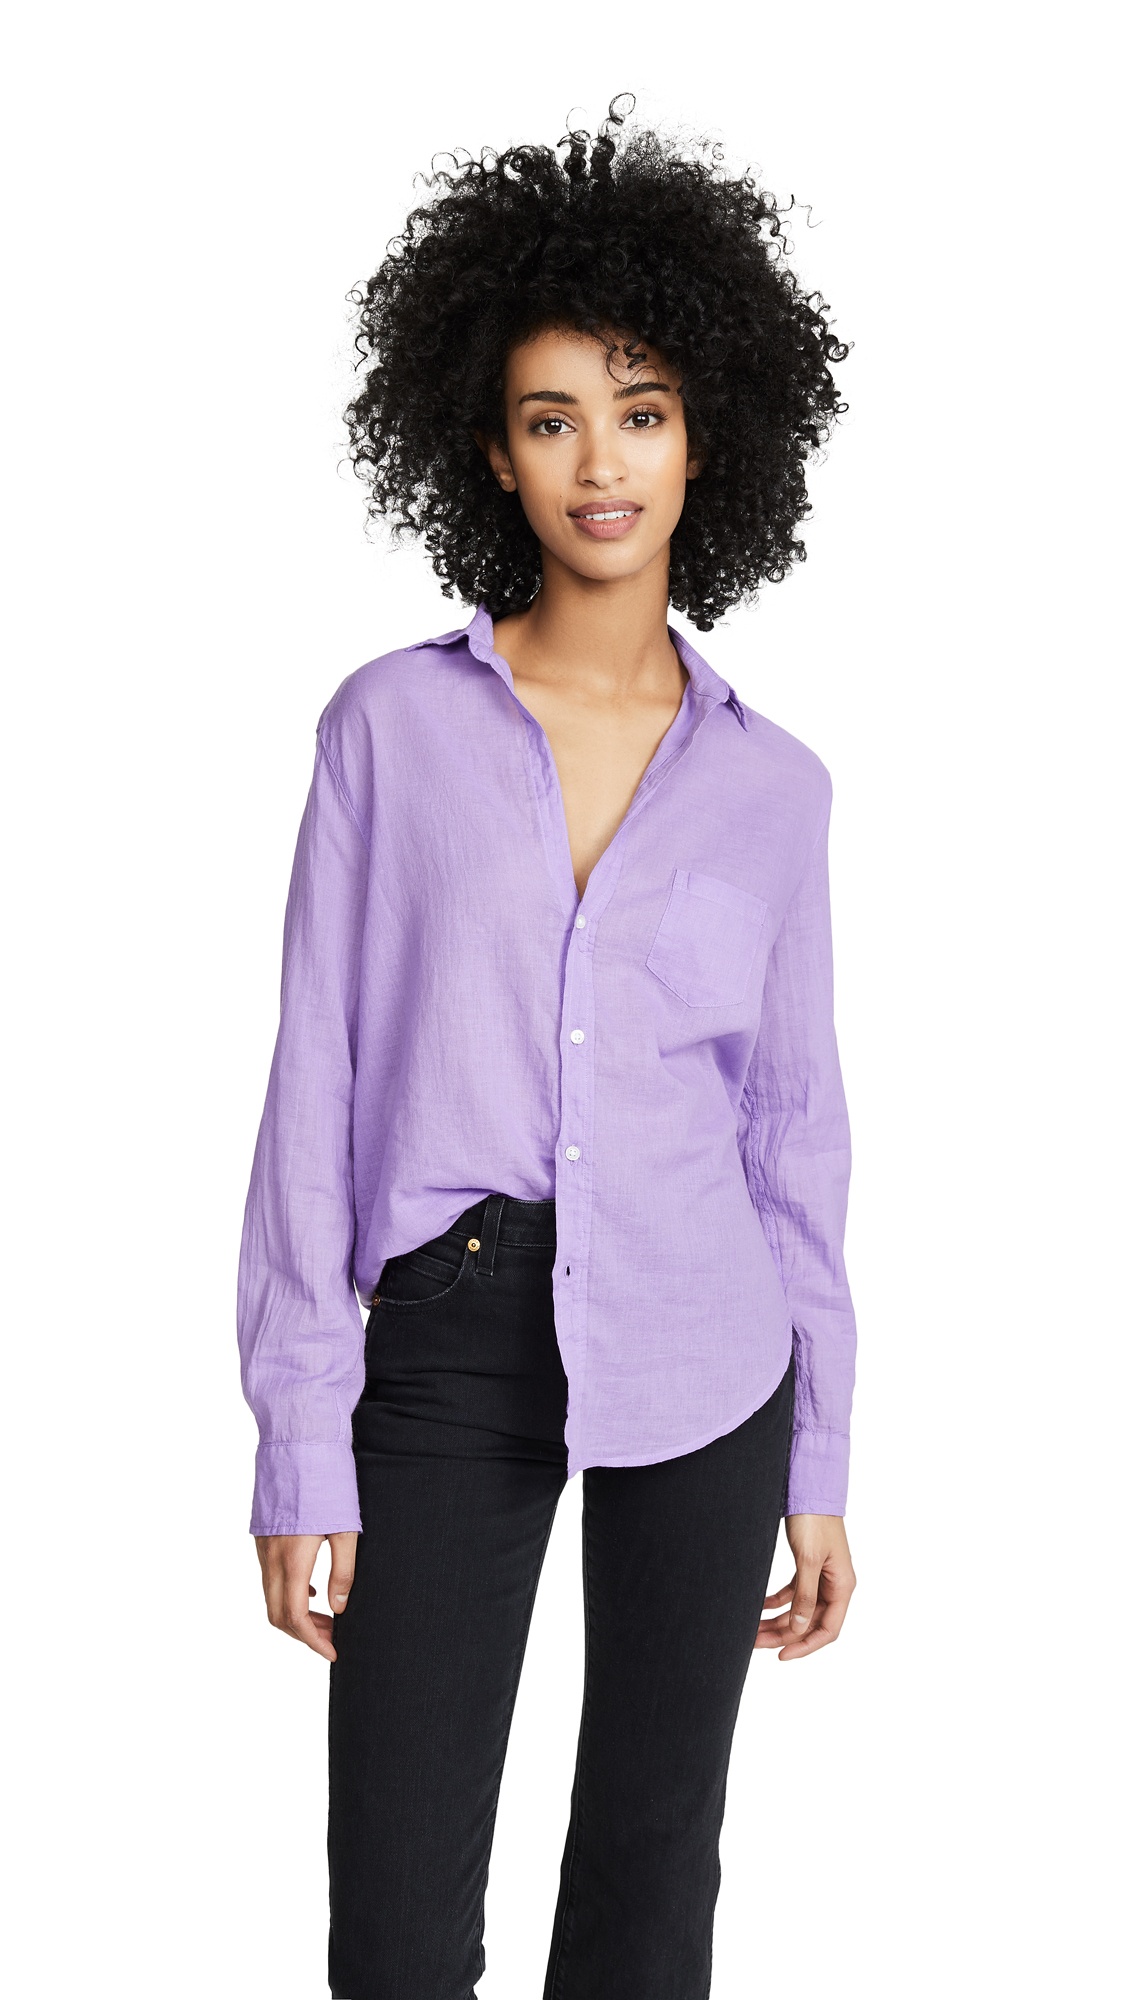 Frank & Eileen Eileen Long Sleeve Button Down Shirt - 40% Off Sale